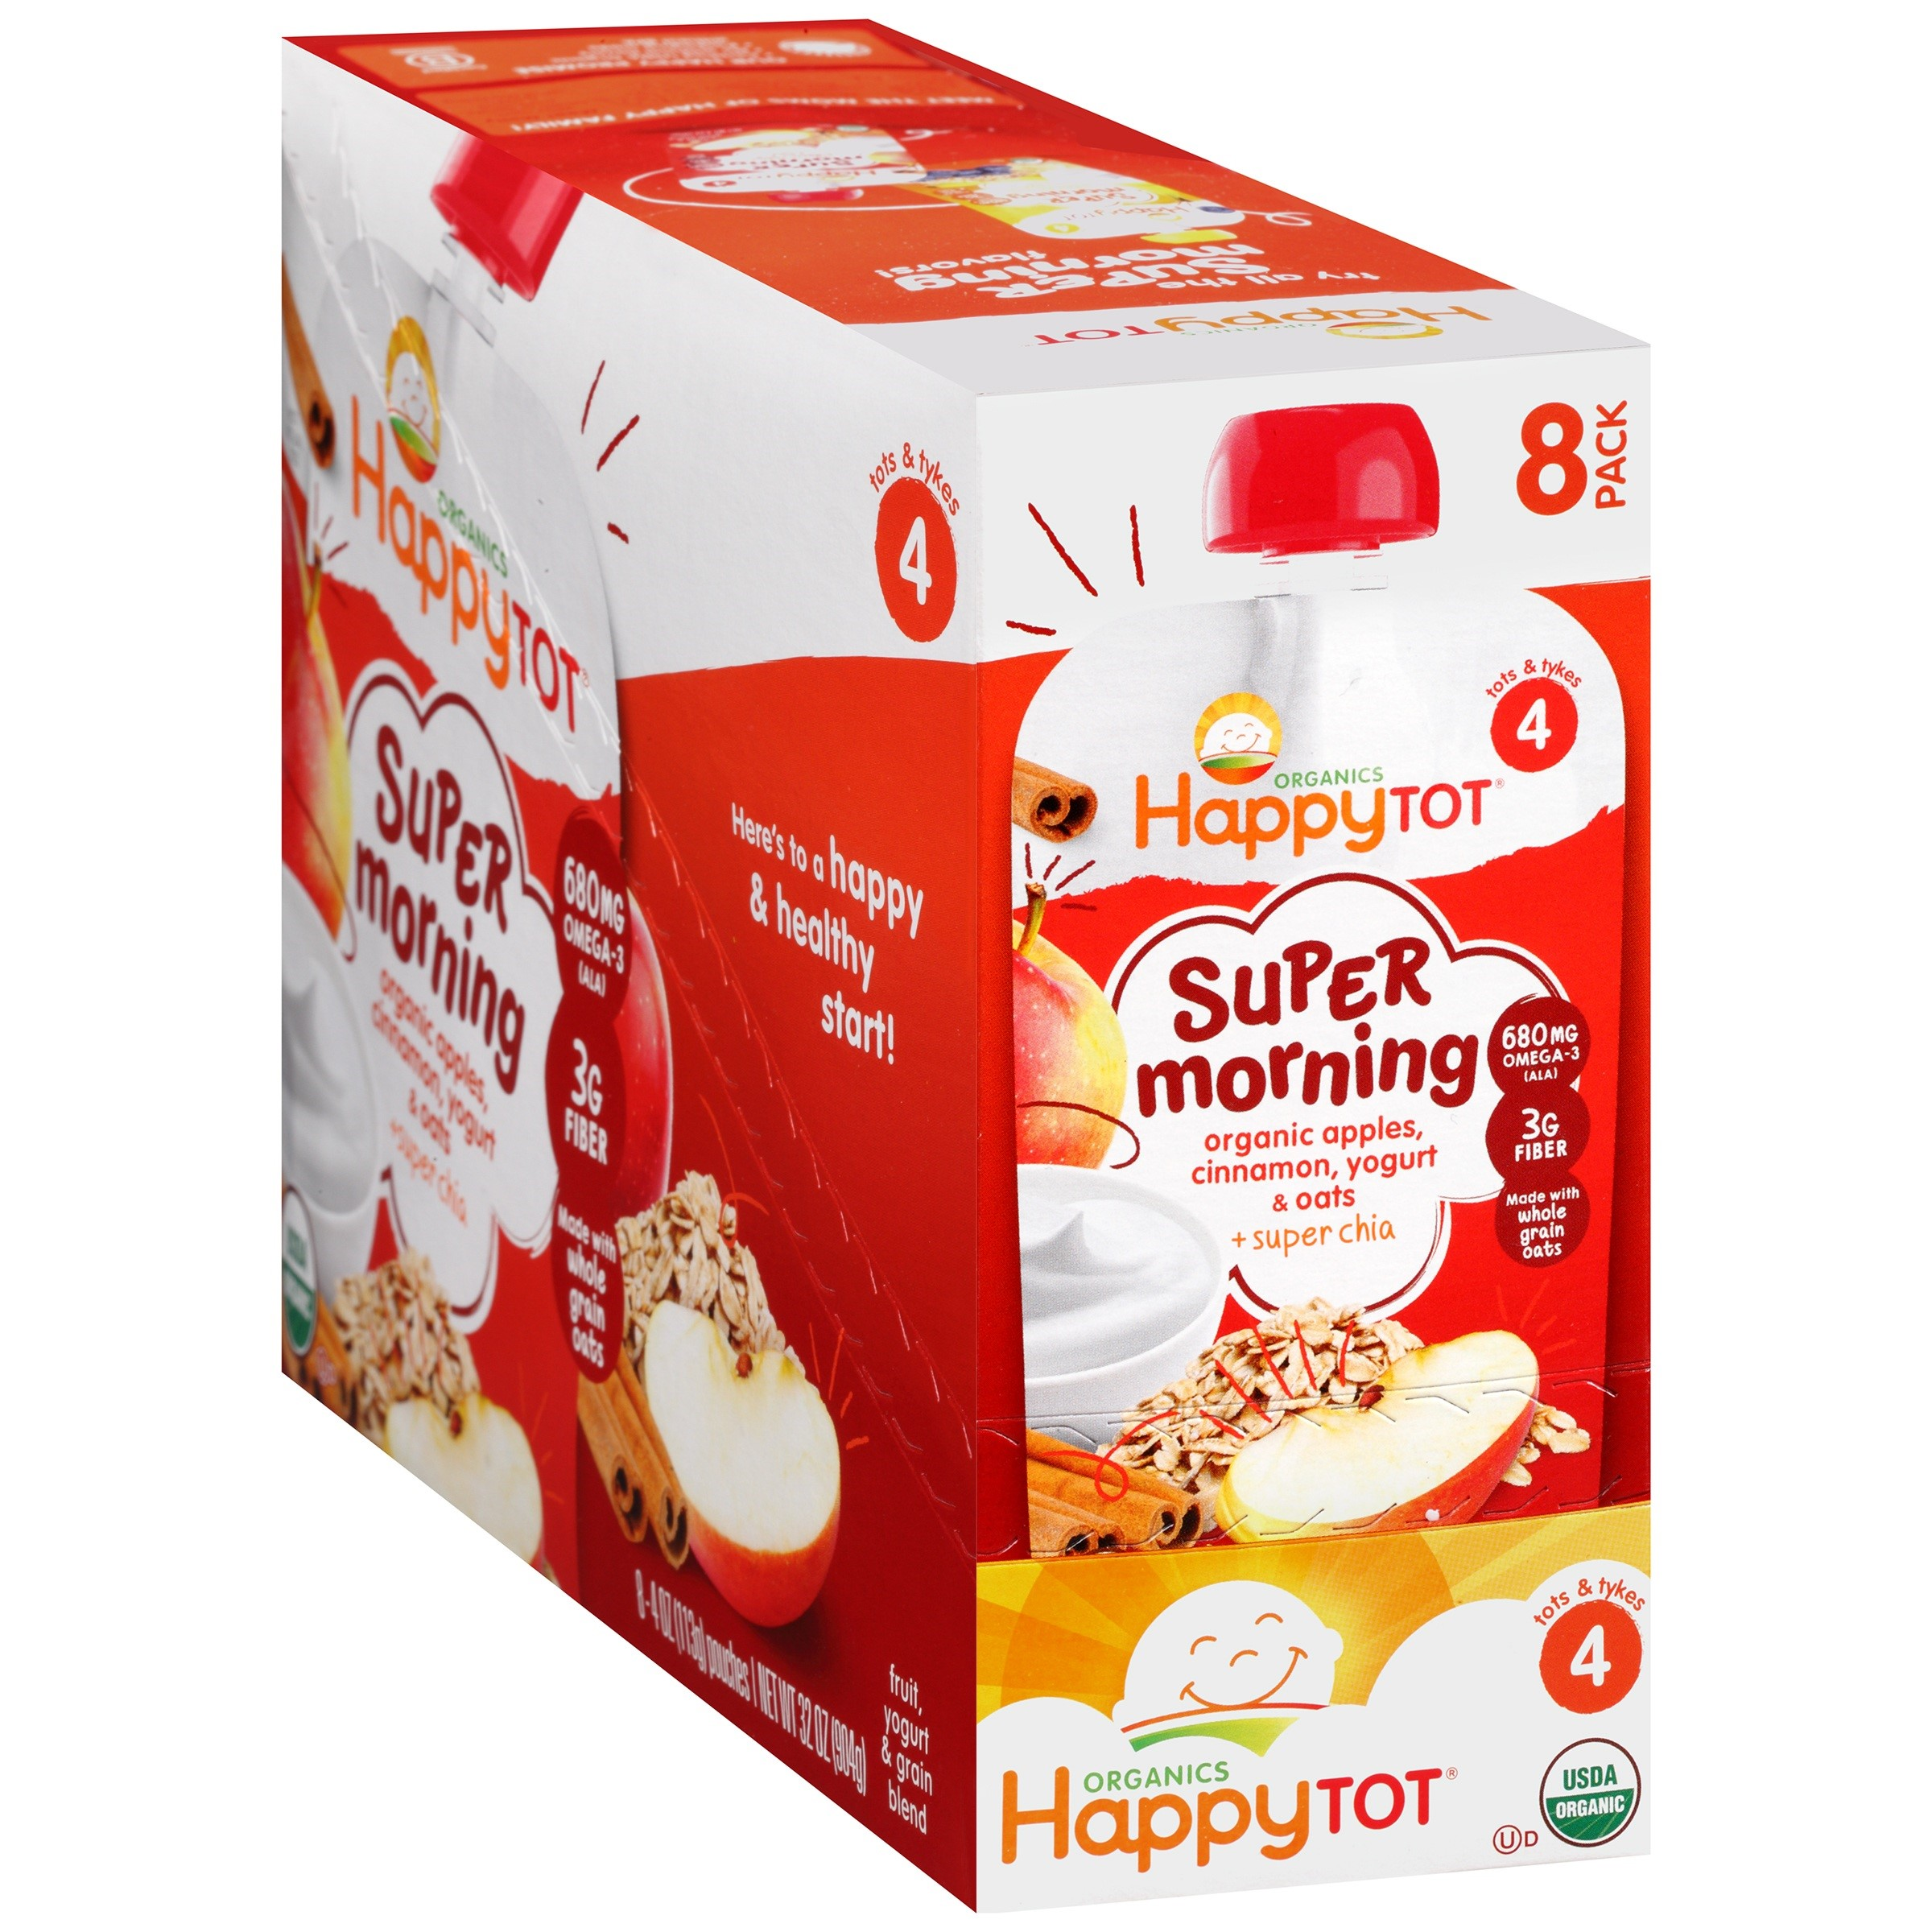 Happy Baby Morning Apple Cinnamon Yogurt & Oats, 4 Ounce Pouch